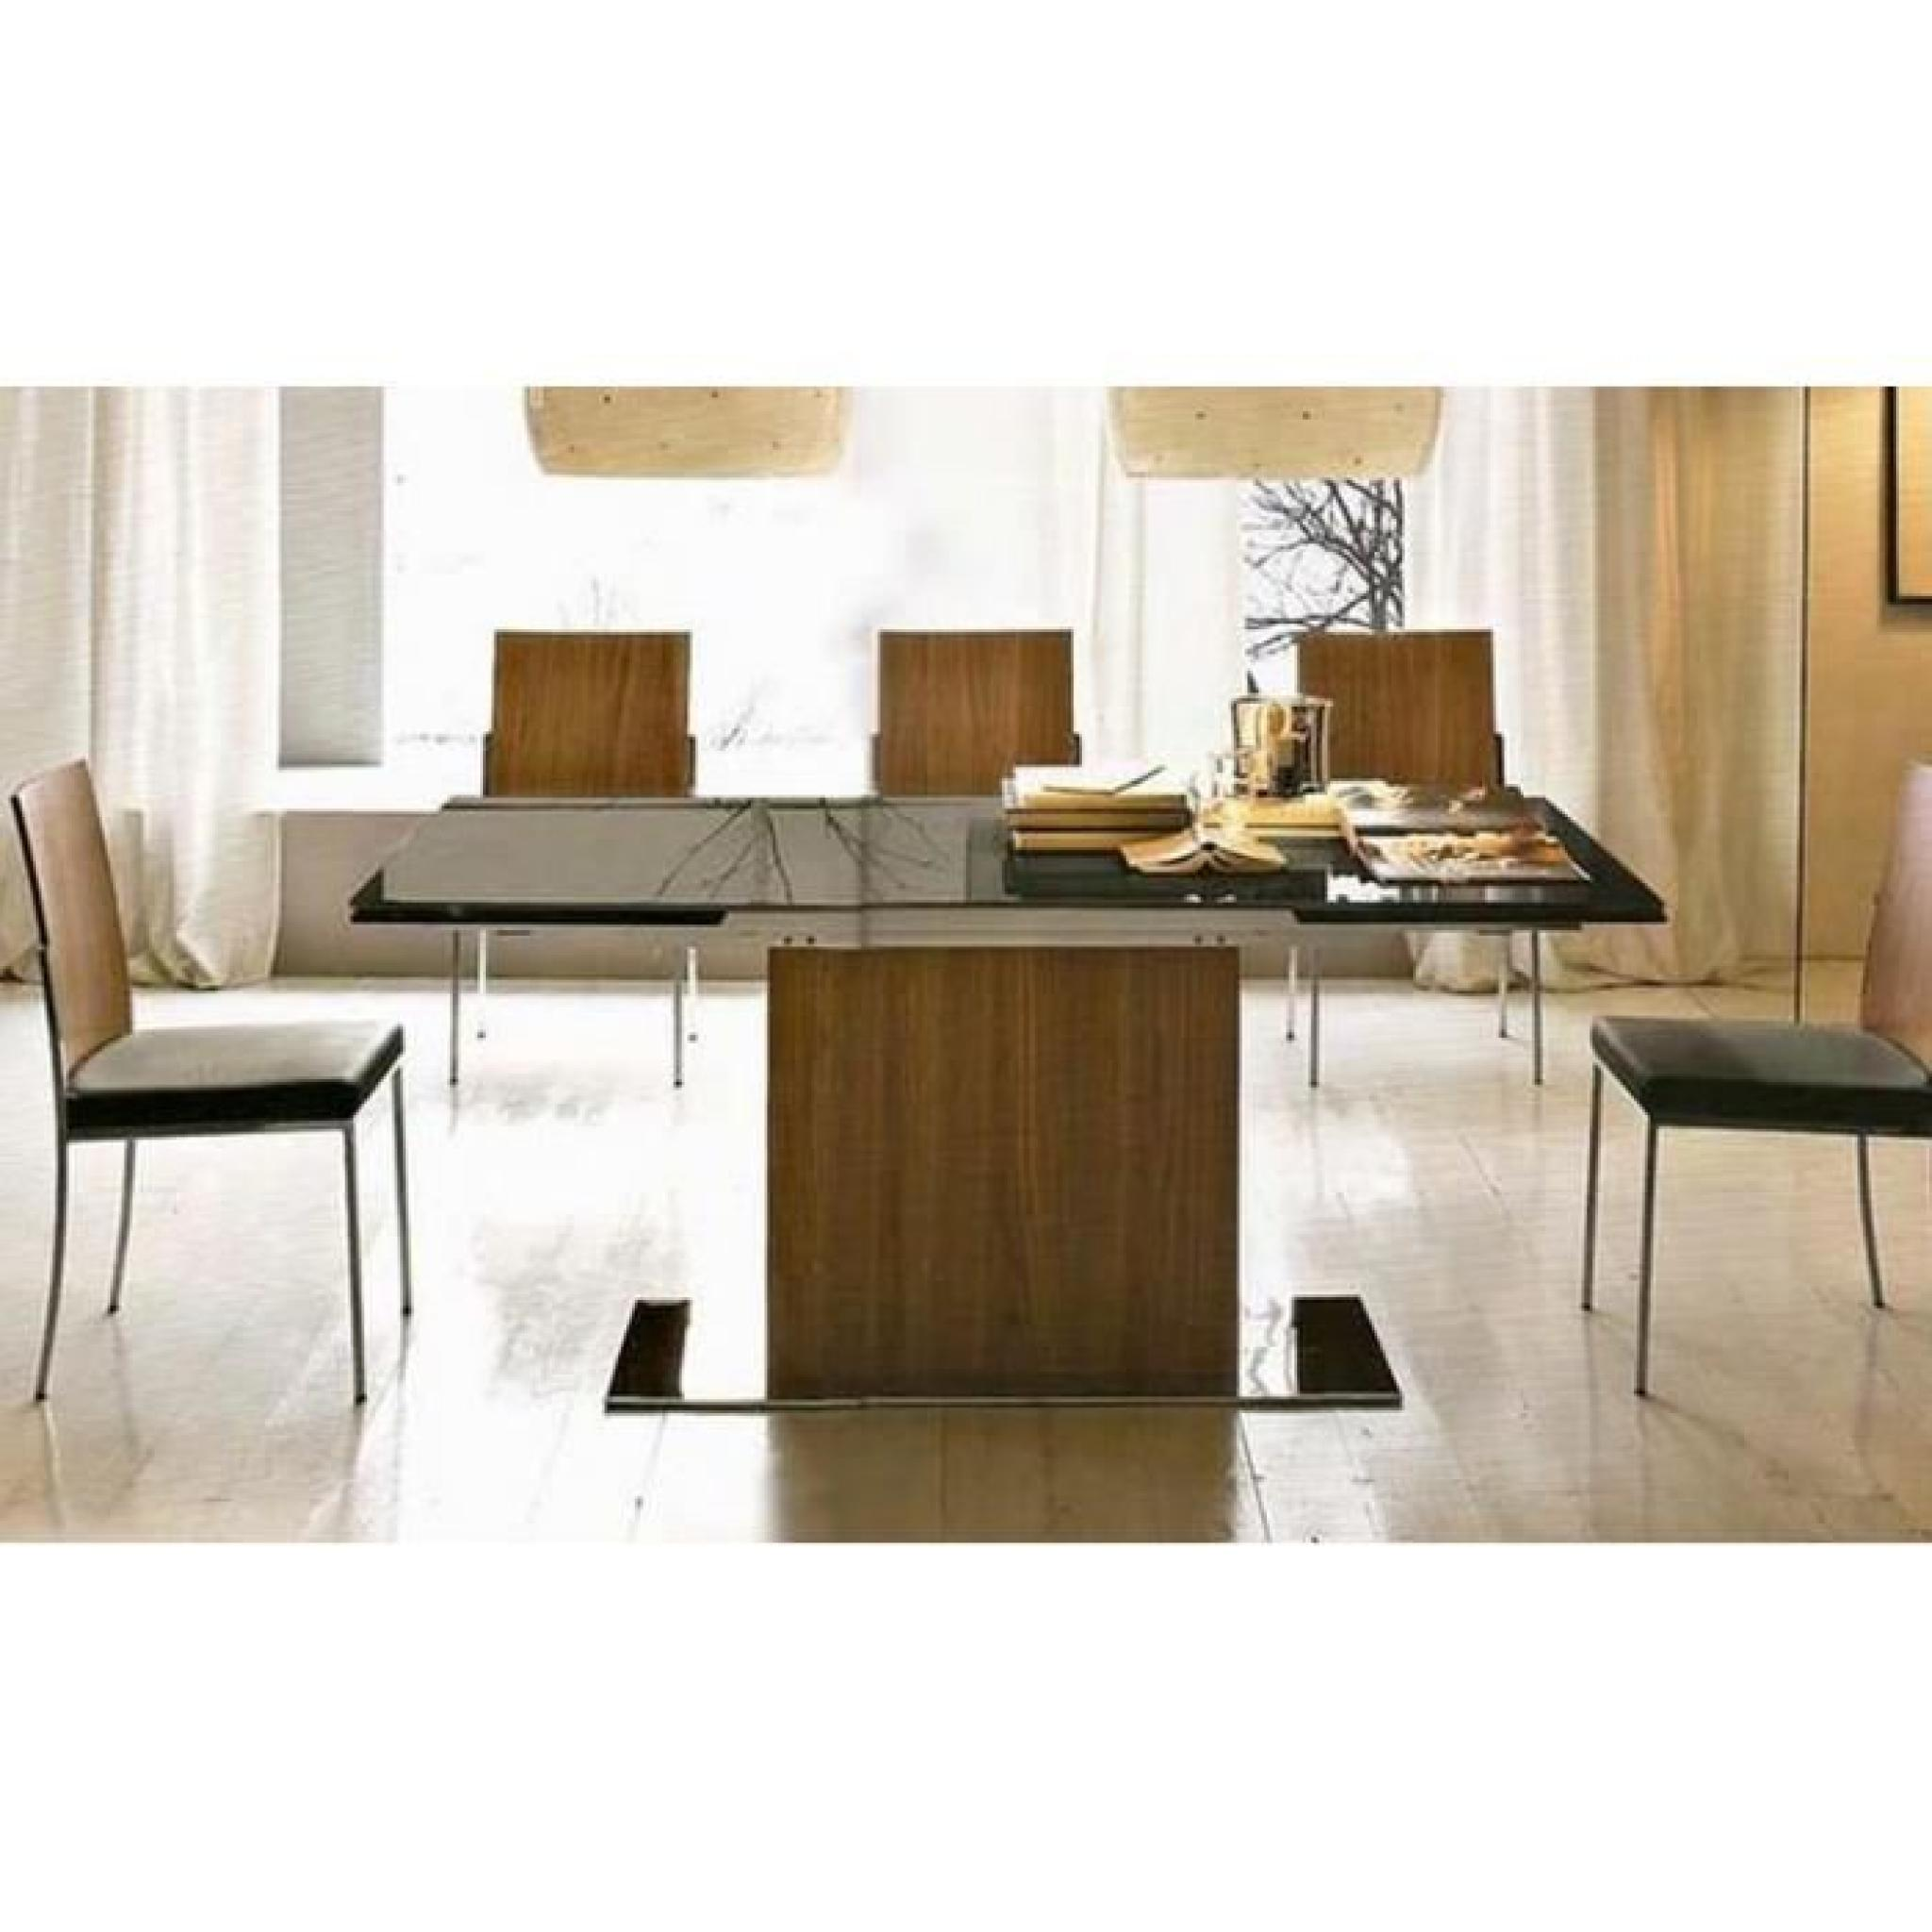 park table repas extensible haut de gamme 180x100 en verre. Black Bedroom Furniture Sets. Home Design Ideas